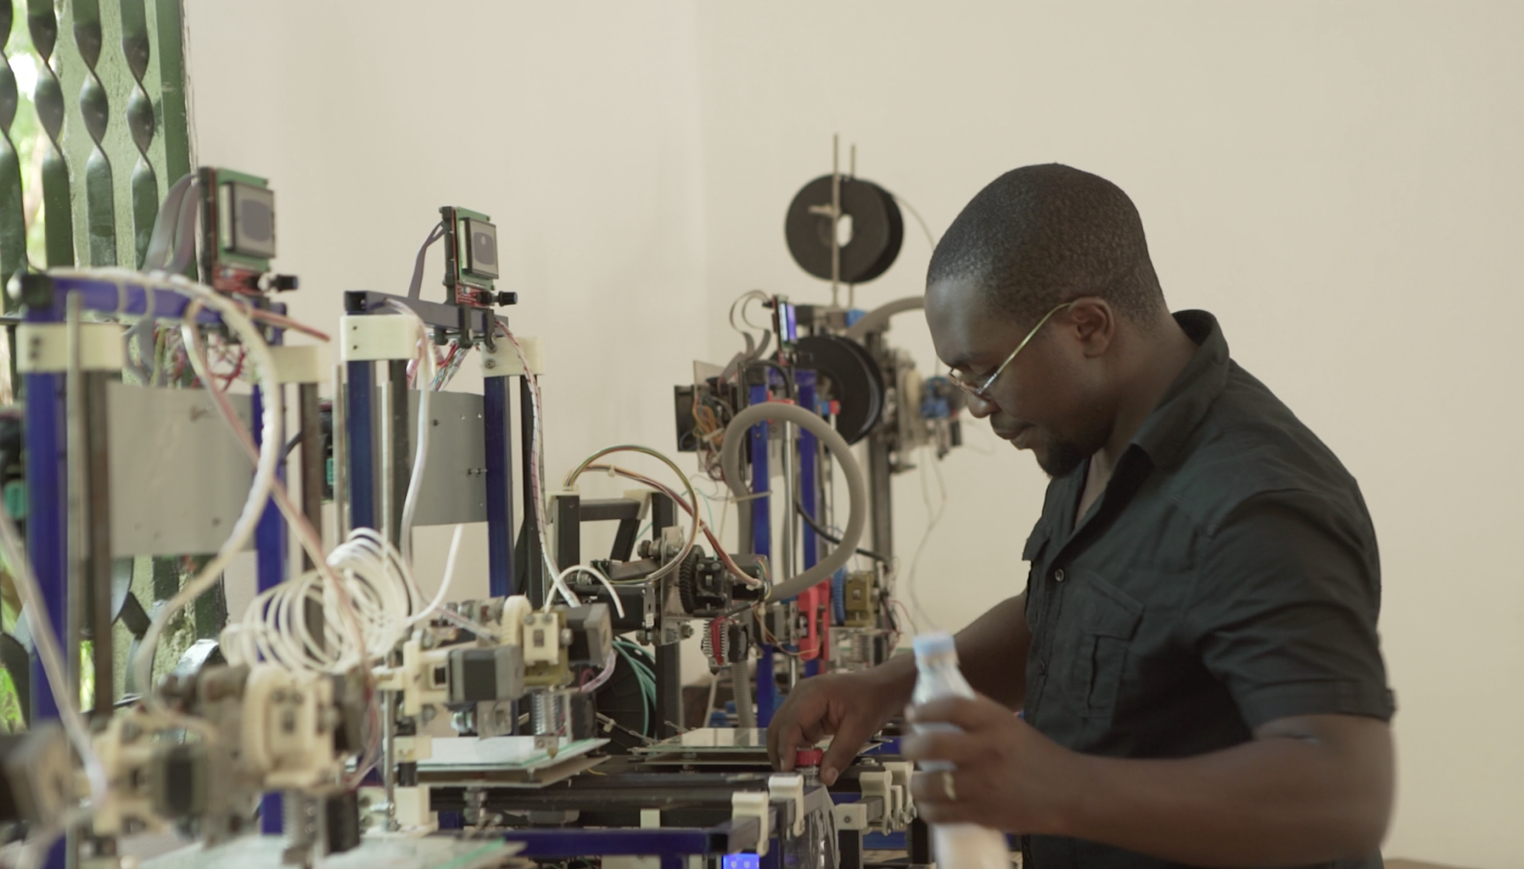 , Reflow: Recycled 3D Printer Filament System That Works